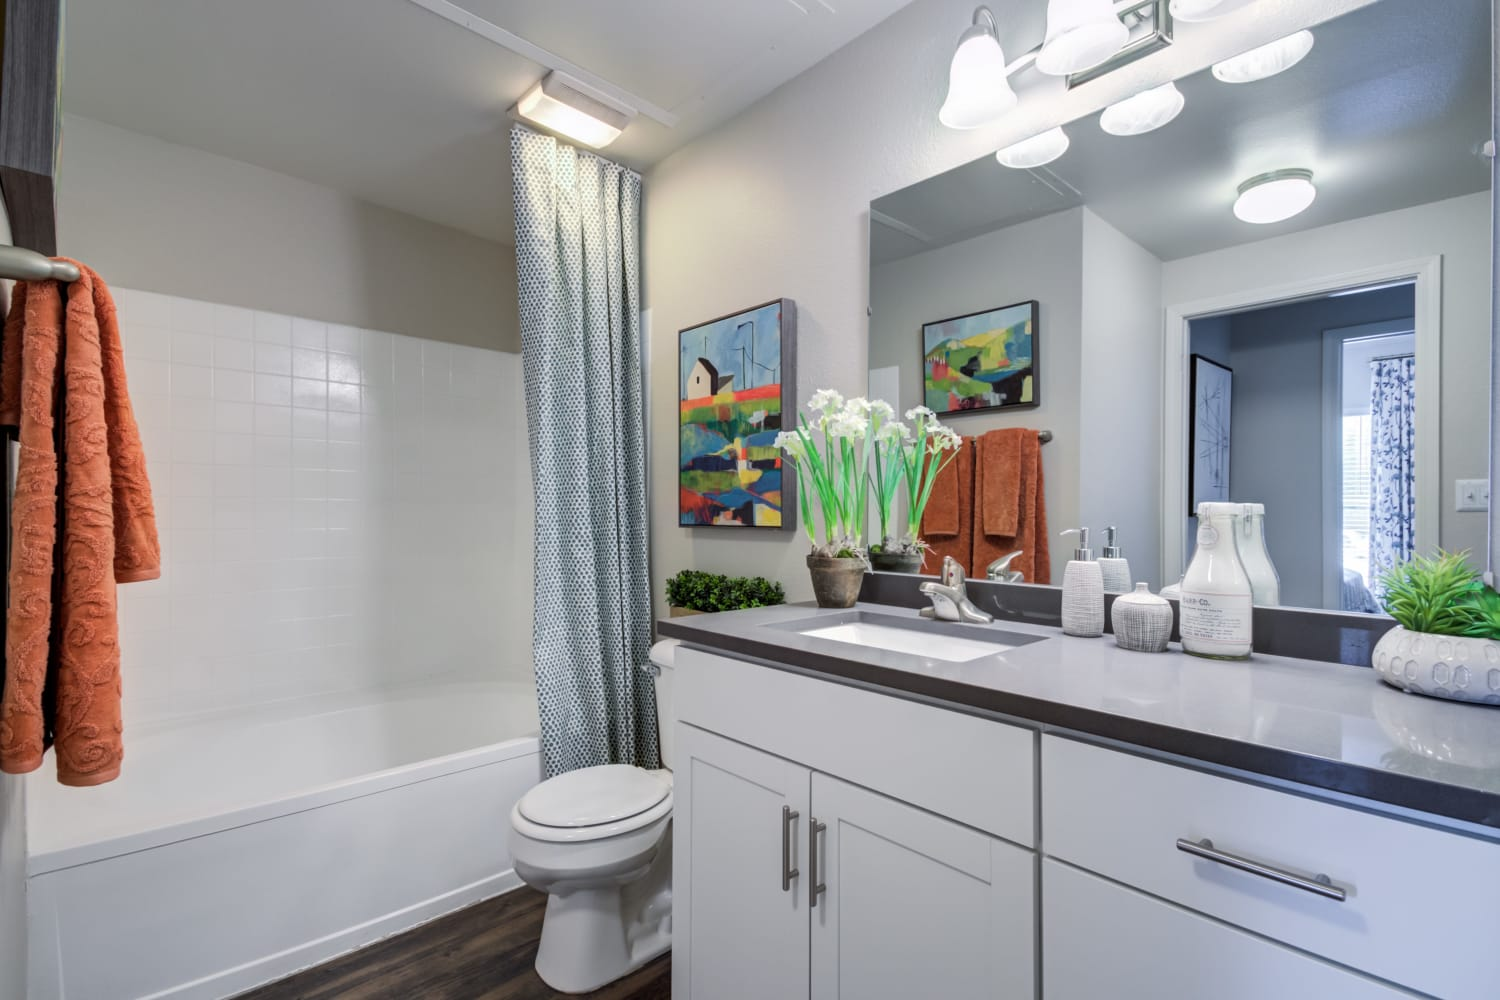 Bathroom at Irving Schoolhouse Apartments in Salt Lake City, Utah Features a shower bathtub and large vanity mirror